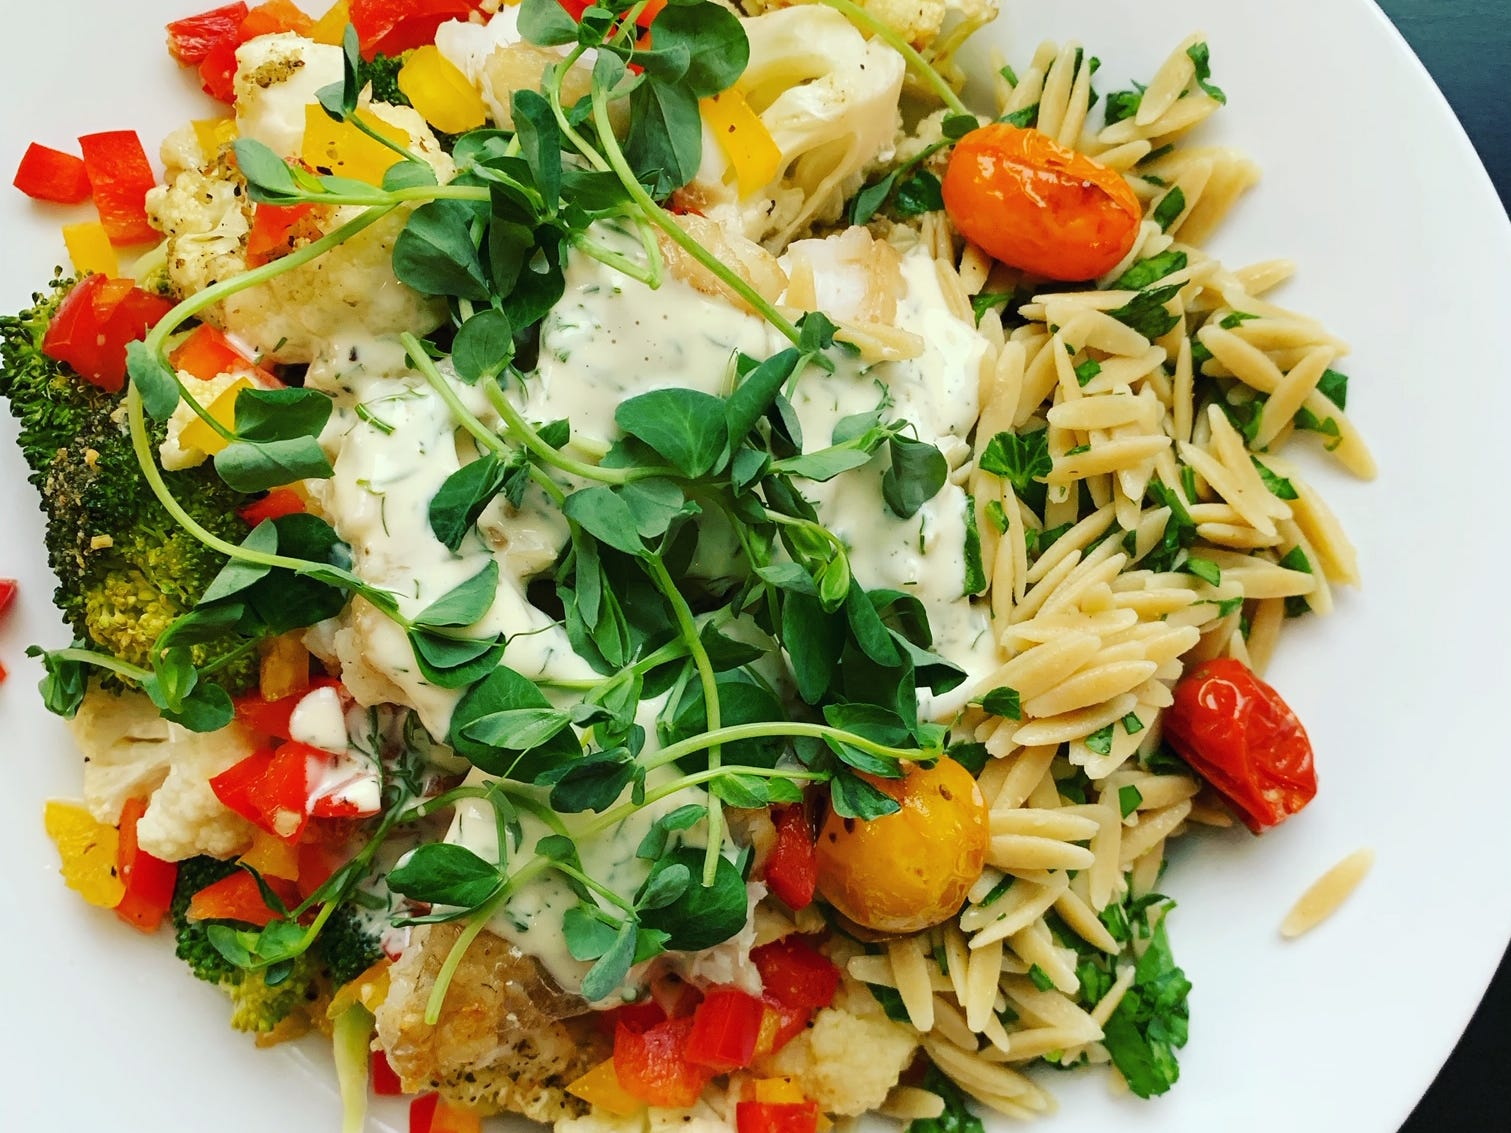 Pan-seared cod with vegetable orzo salad (from her blog) is garnished with microgreens.